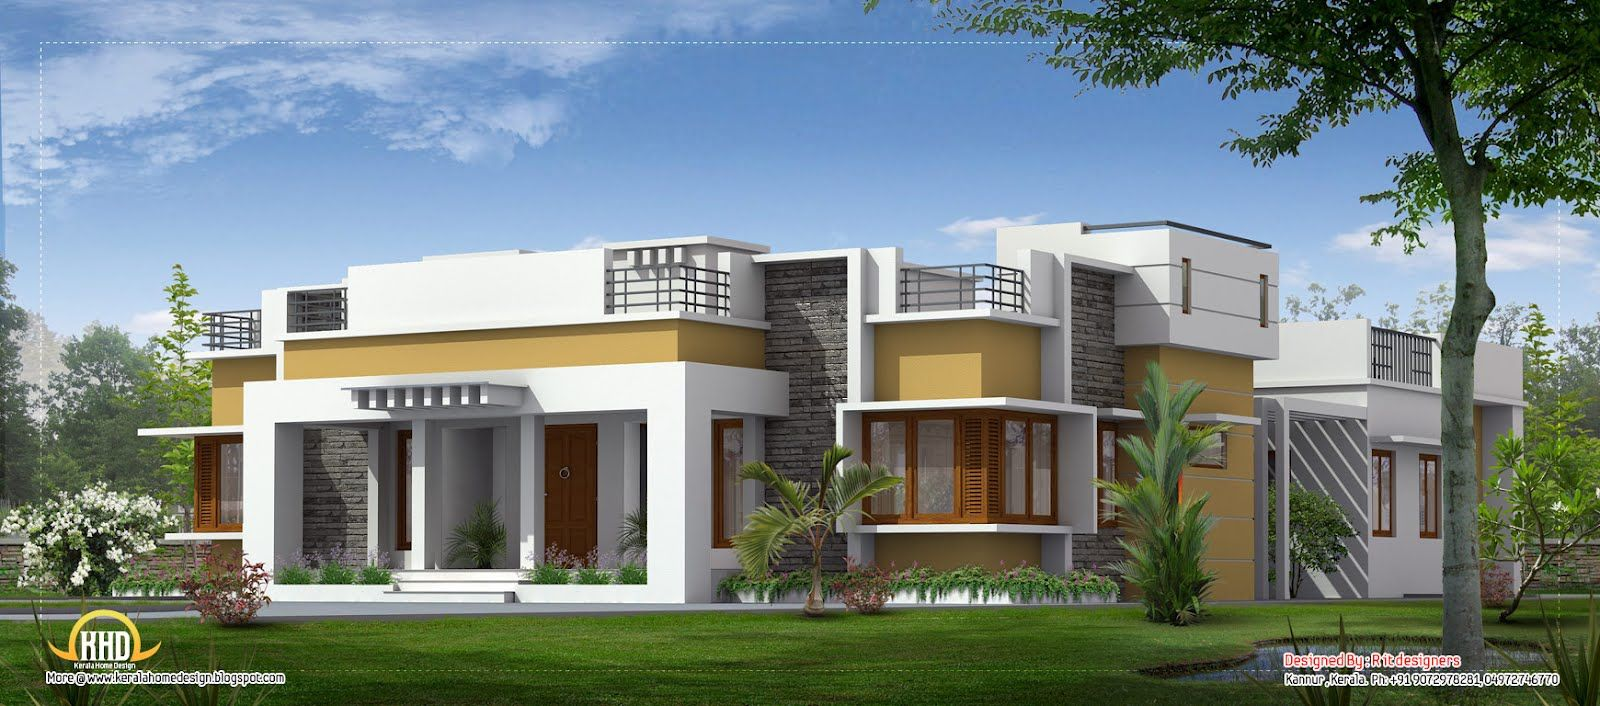 Single level designer home single floor house plans for Single house design